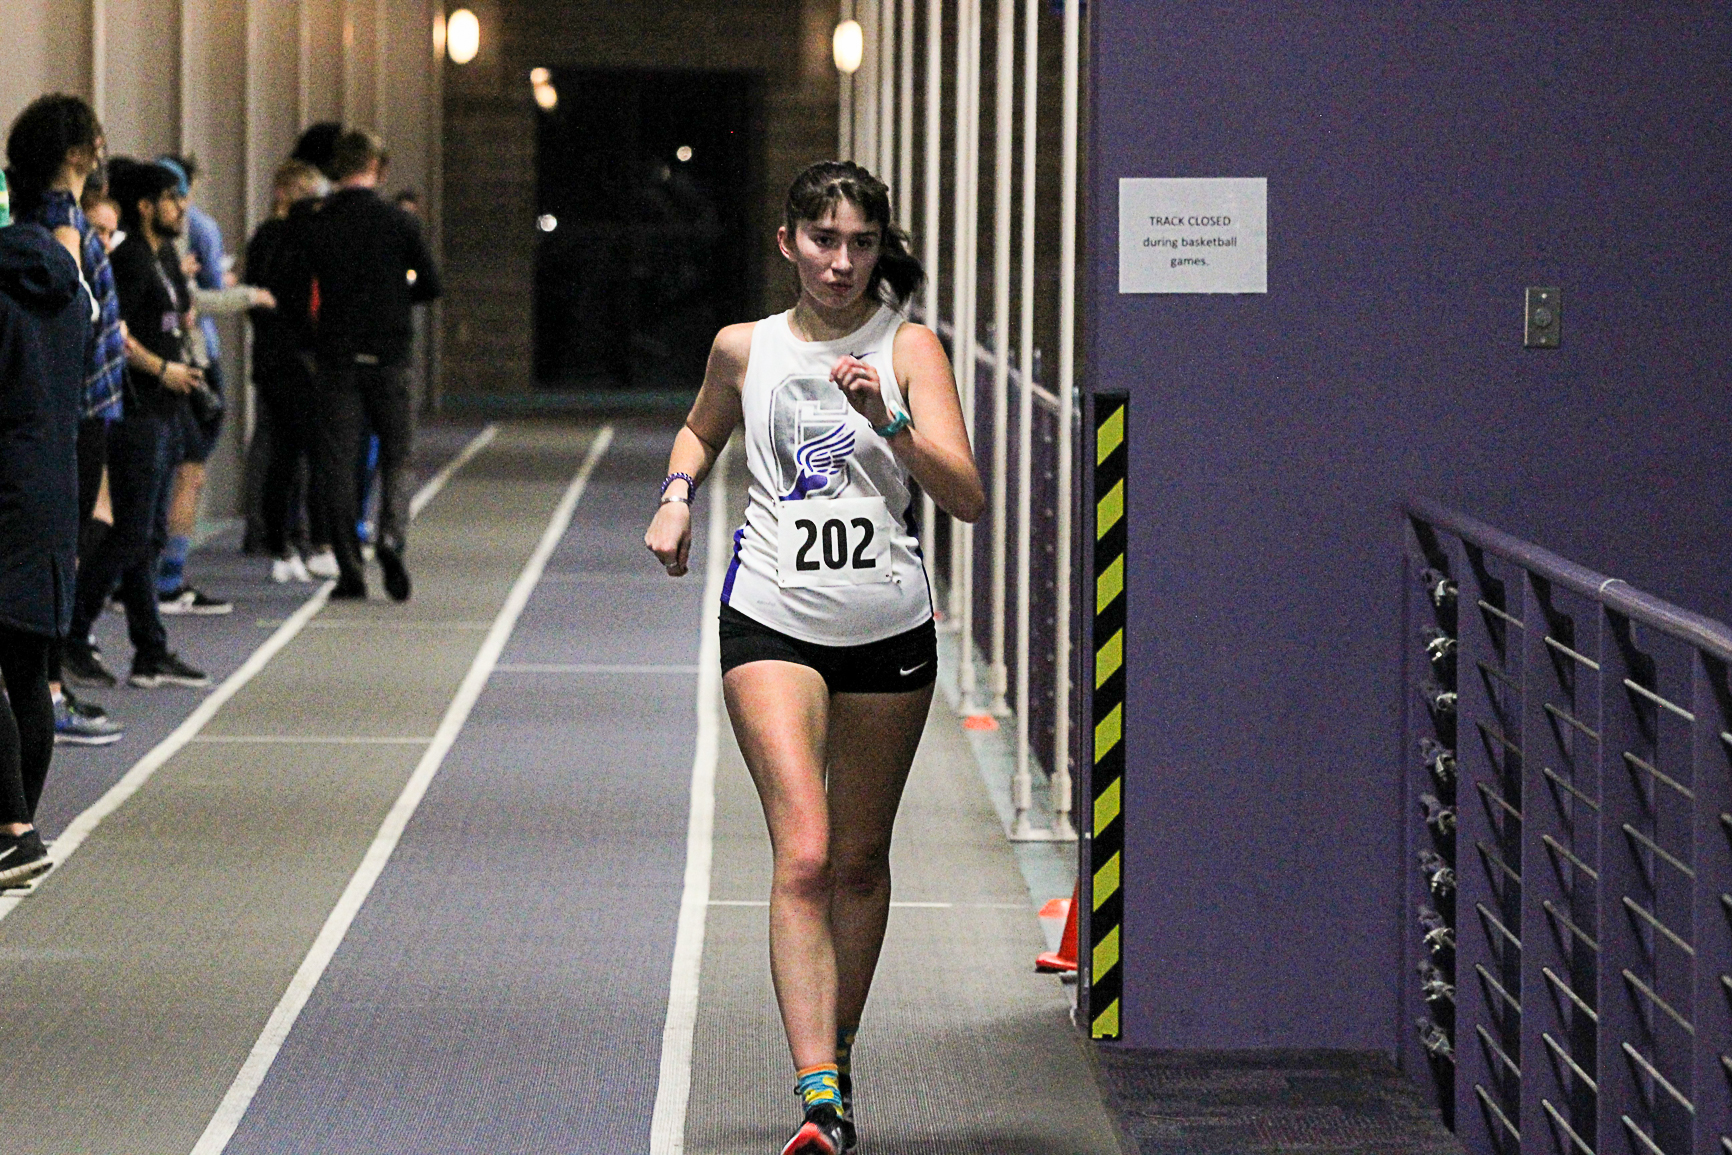 Hayley Bickford competes in the race walk event on the RFC indoor track